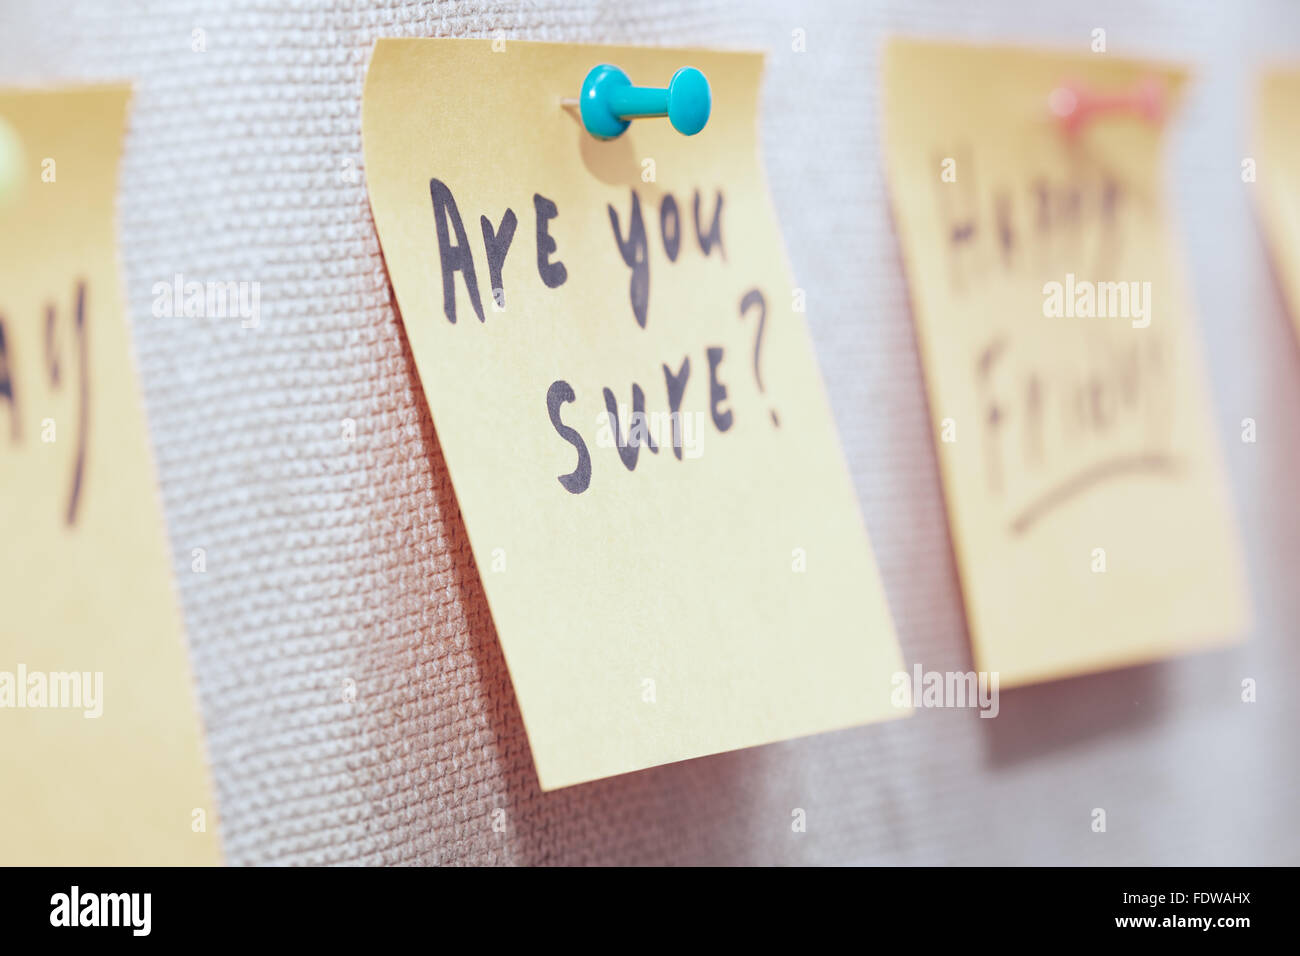 Adhesive note with Are you sure text on a label - Stock Image